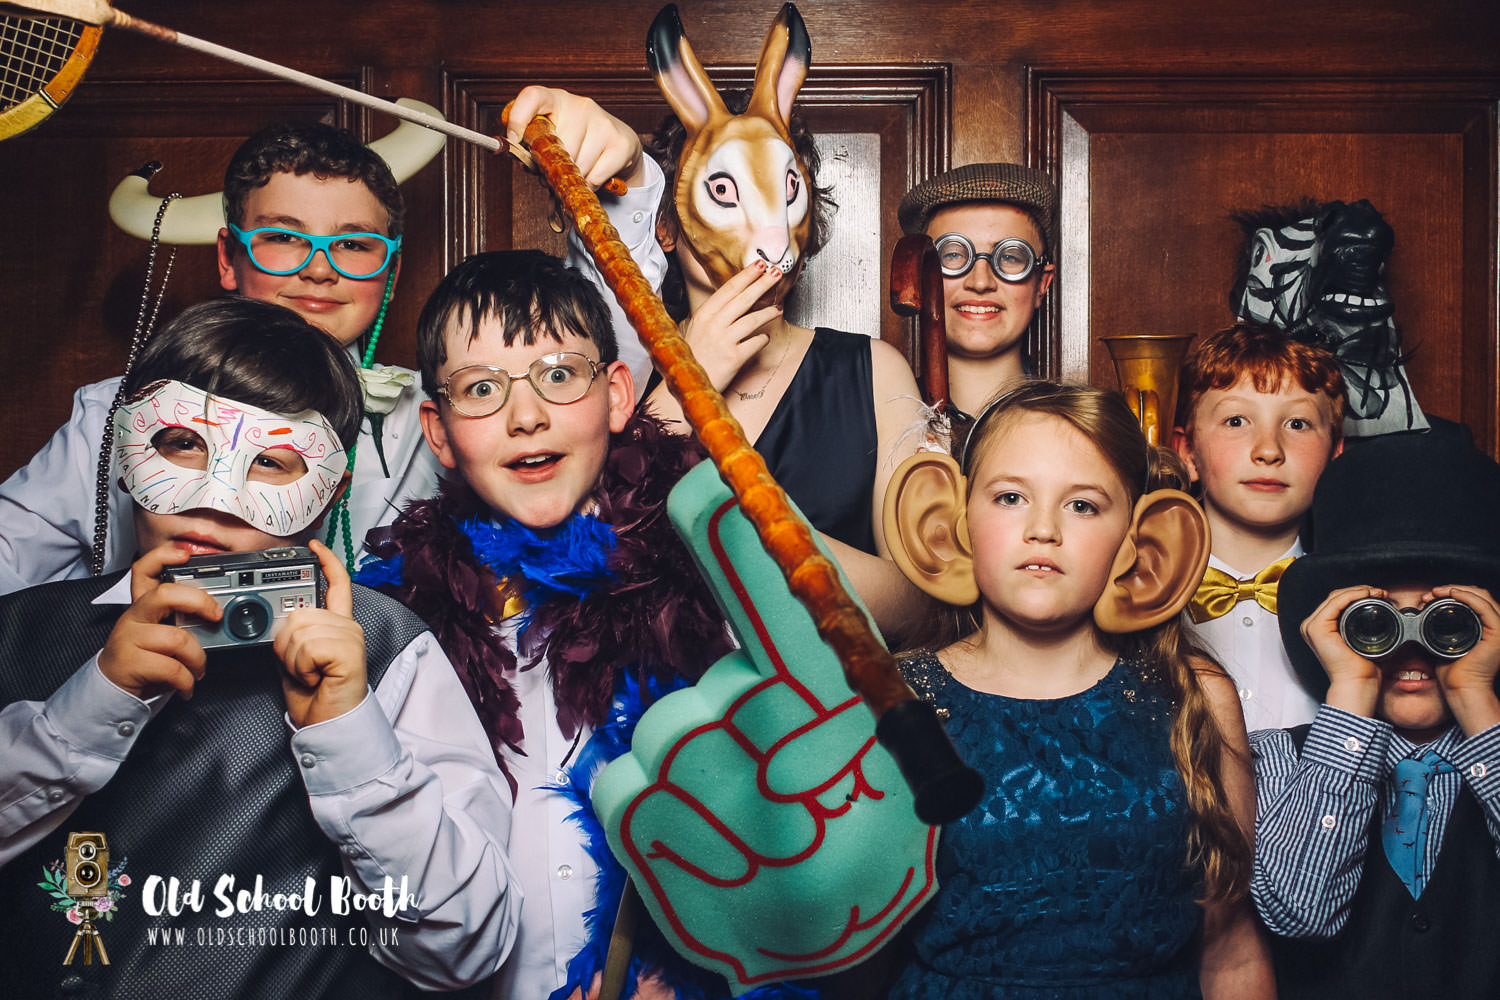 stockport photo booth